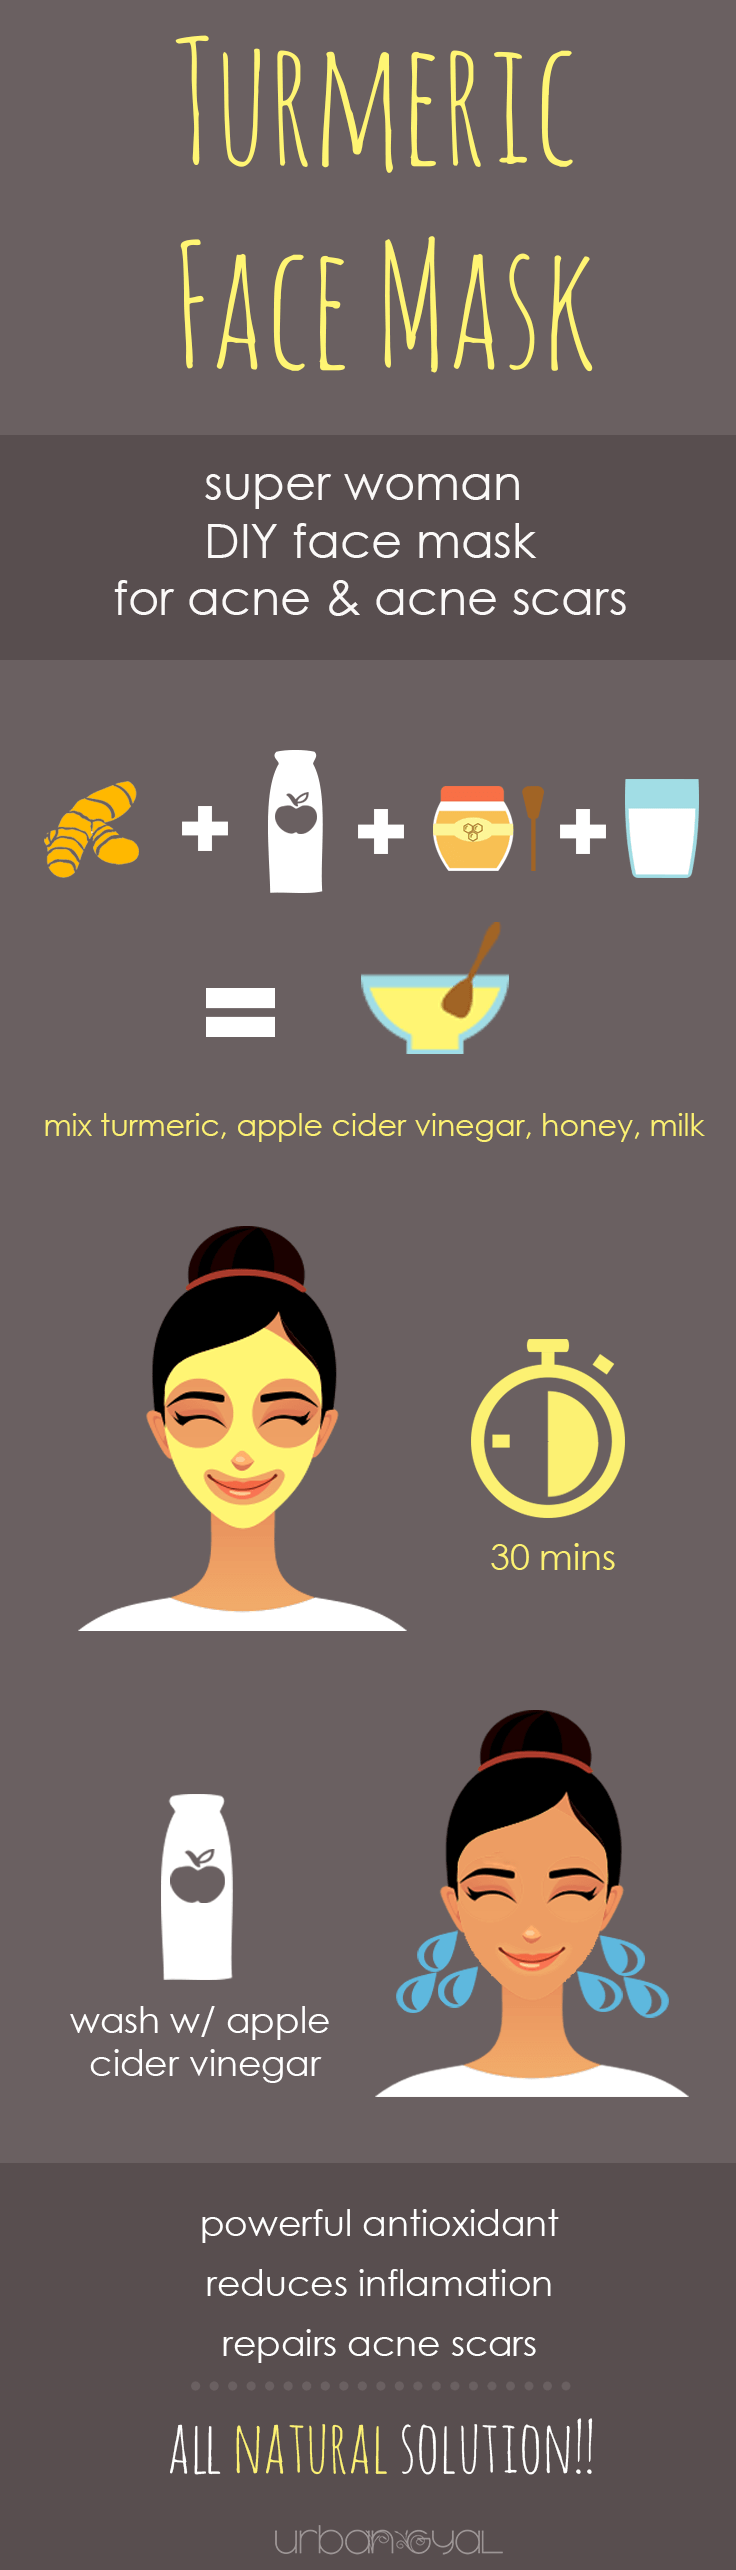 Turmeric Face Mask Infographic